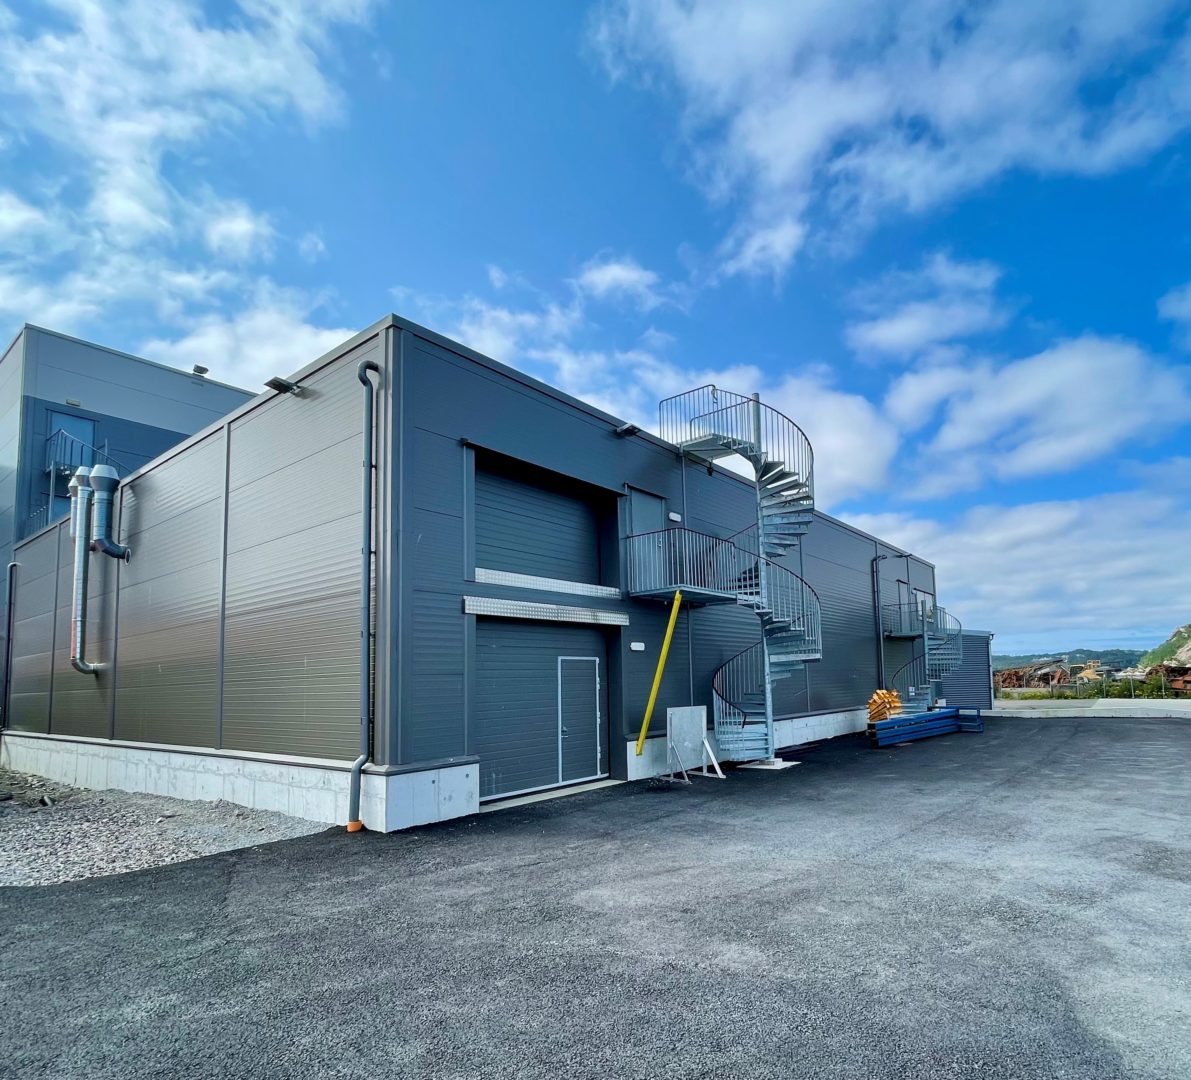 Biomega Invests in New Raw Material Facility to Expand Biorefining Capacity & Improve Quality